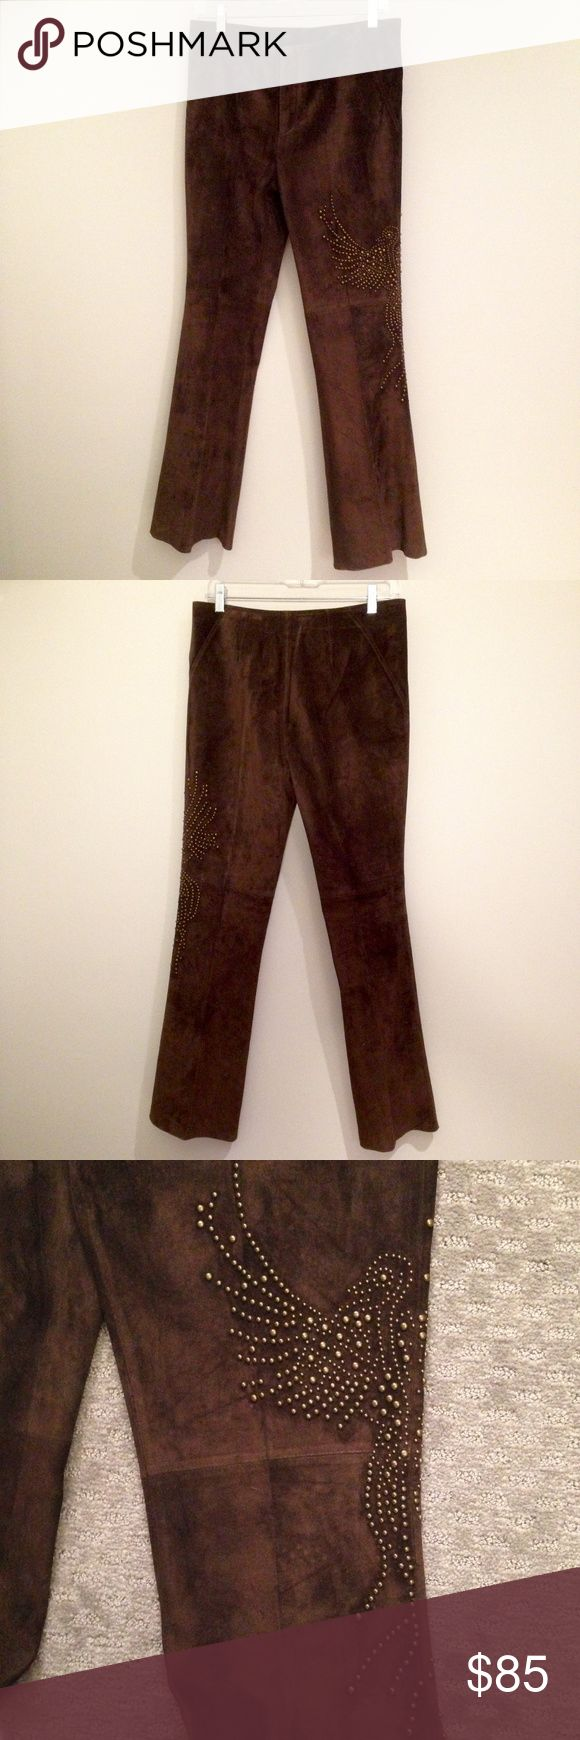 """Brown Suede Studded Flared Pants by David Neal 100% leather (actually, buttery suede) w metal stud embellishments down the left leg -- they look like metal, but could perhaps be a high grade of plastic. I'm not sure, so I mention it. Flared & fully lined, with a seam around the knees & triangular seams on either side of the waist. 31"""" inseam. Excellent condition -- they've never been worn. NWOT vintage. Really beautiful pants! David Neal Pants Boot Cut & Flare"""